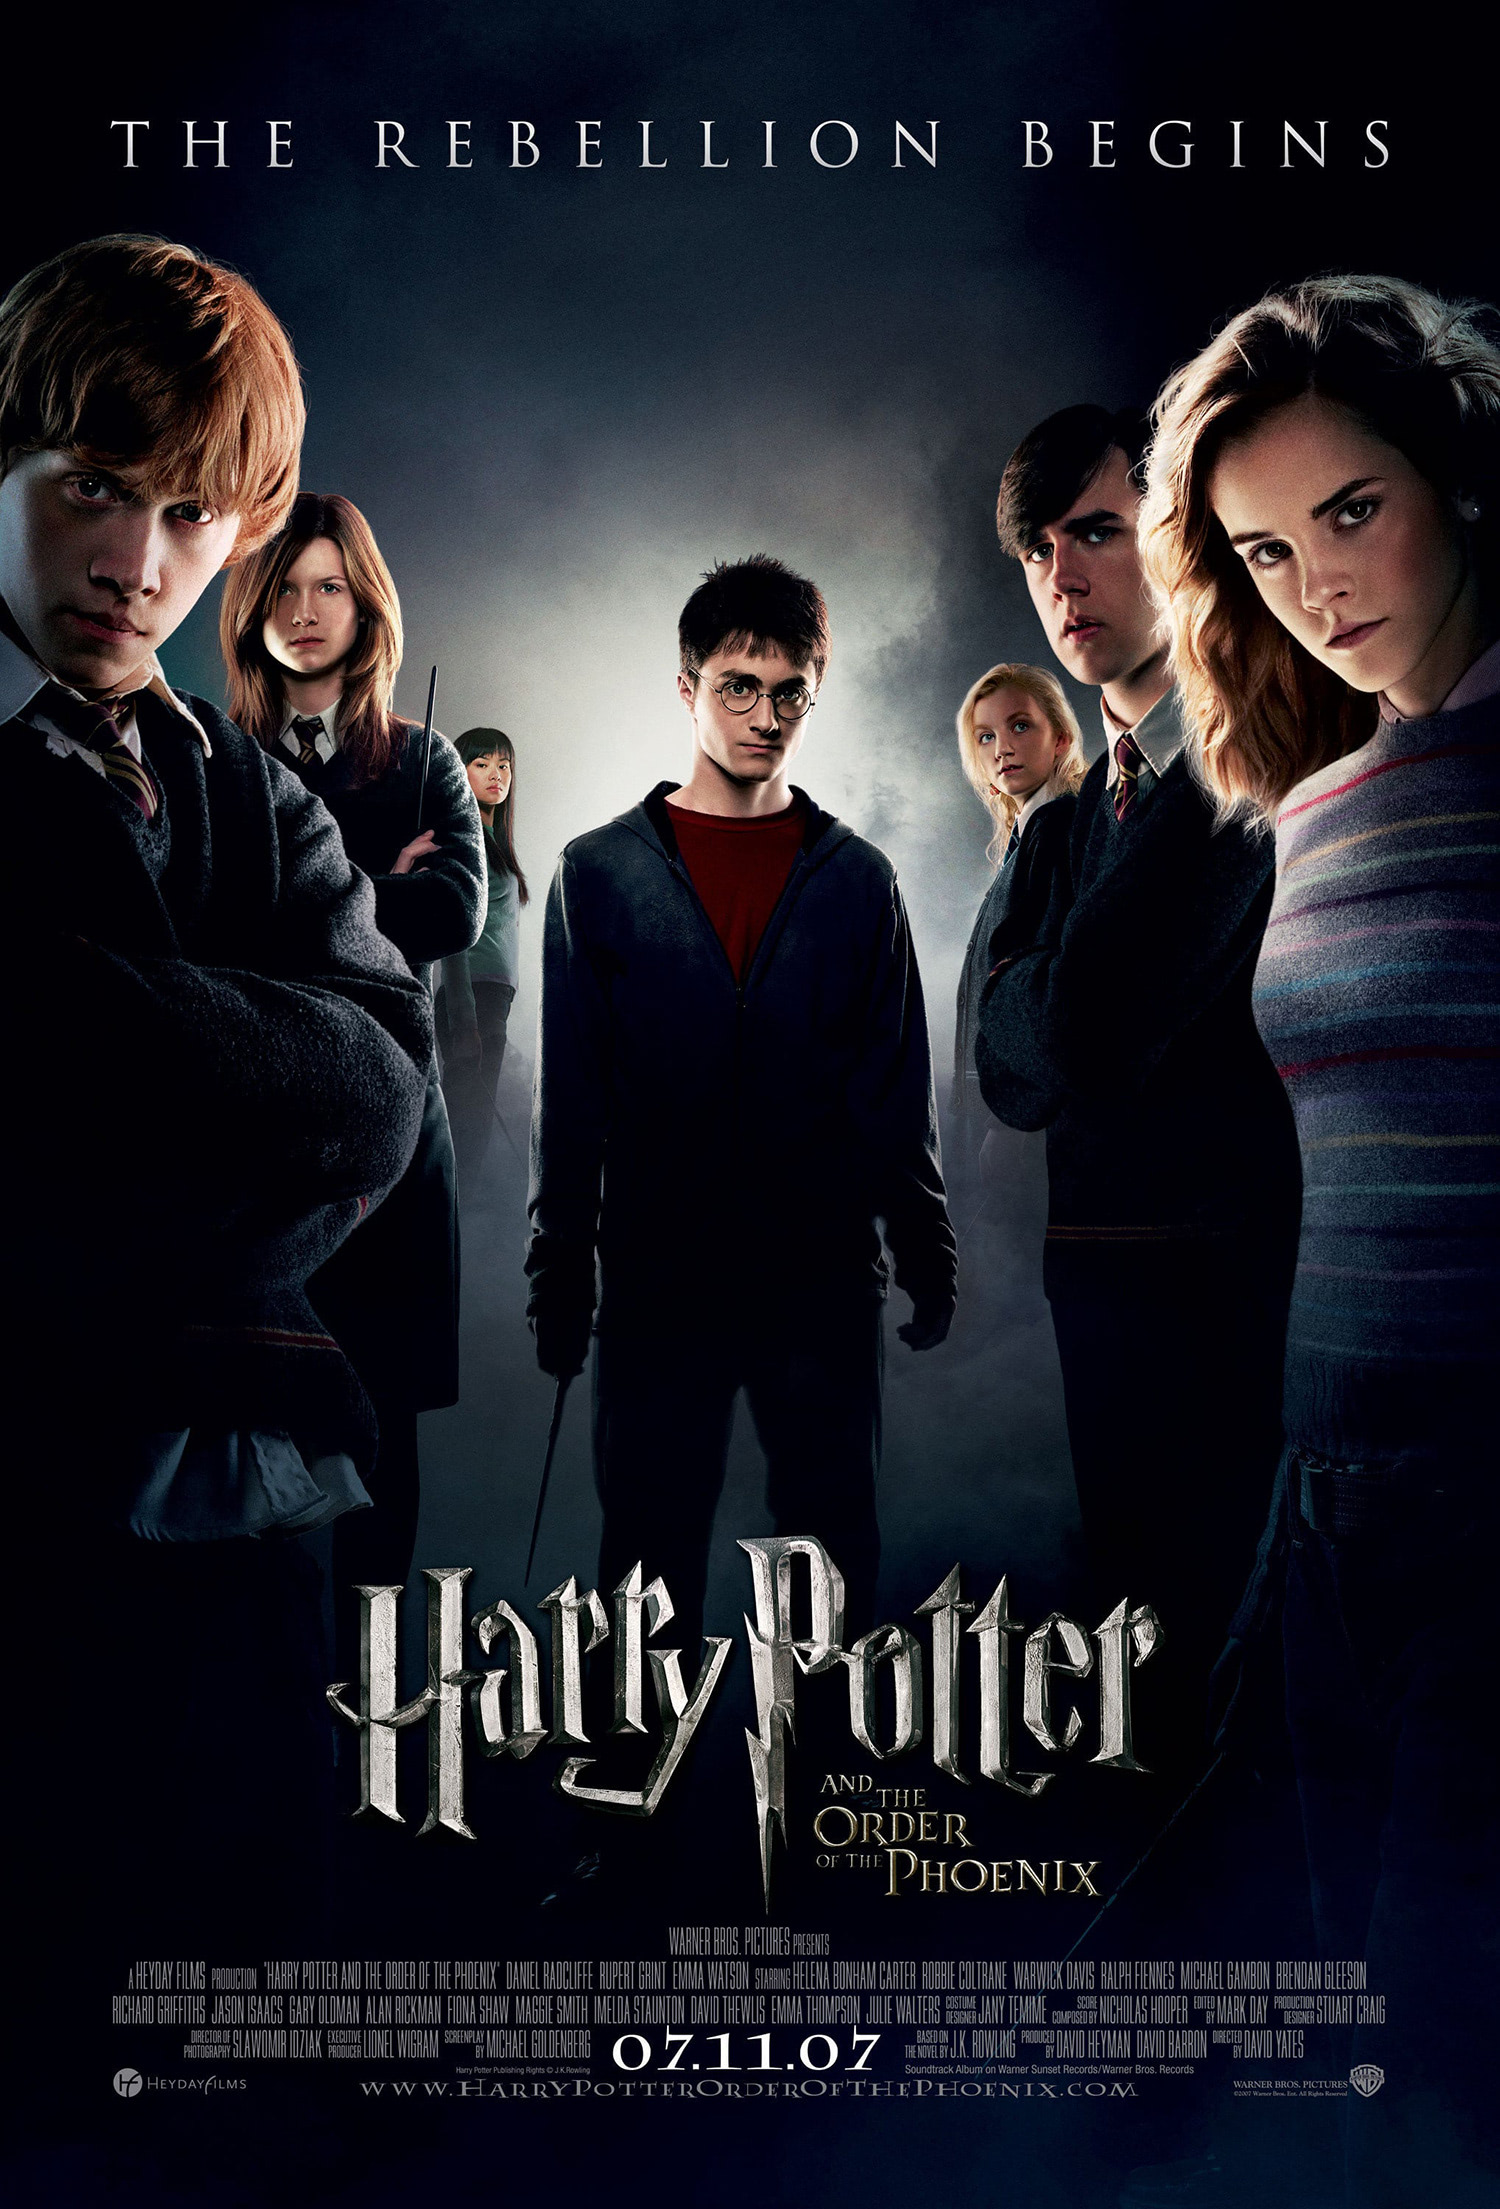 'Order of the Phoenix' theatrical poster